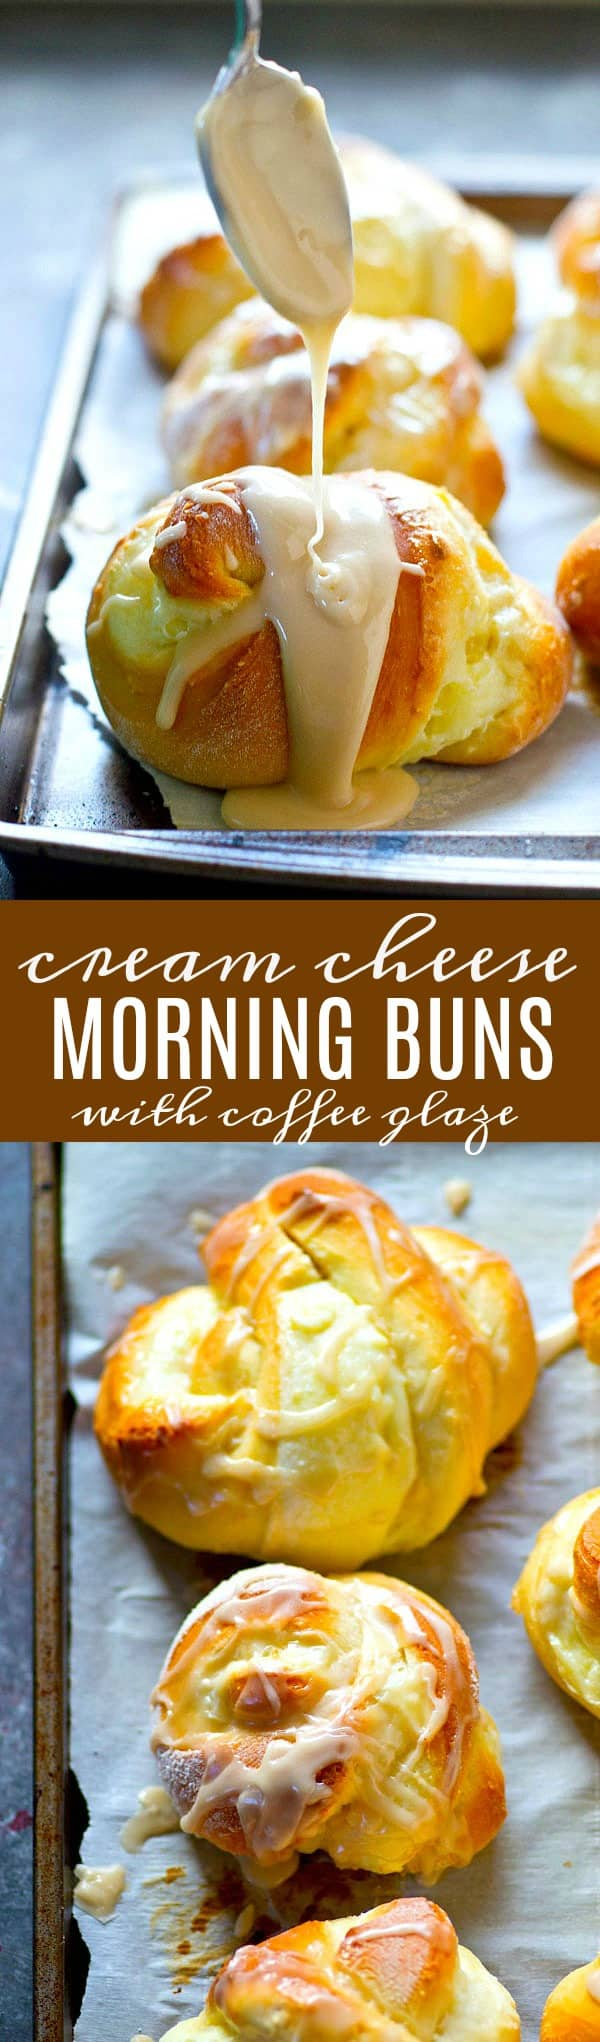 Swirled with a luscious cream cheese filling and drizzled with tons of coffee glaze, these cream cheese morning buns are the best holiday breakfast you'll ever wake up to!